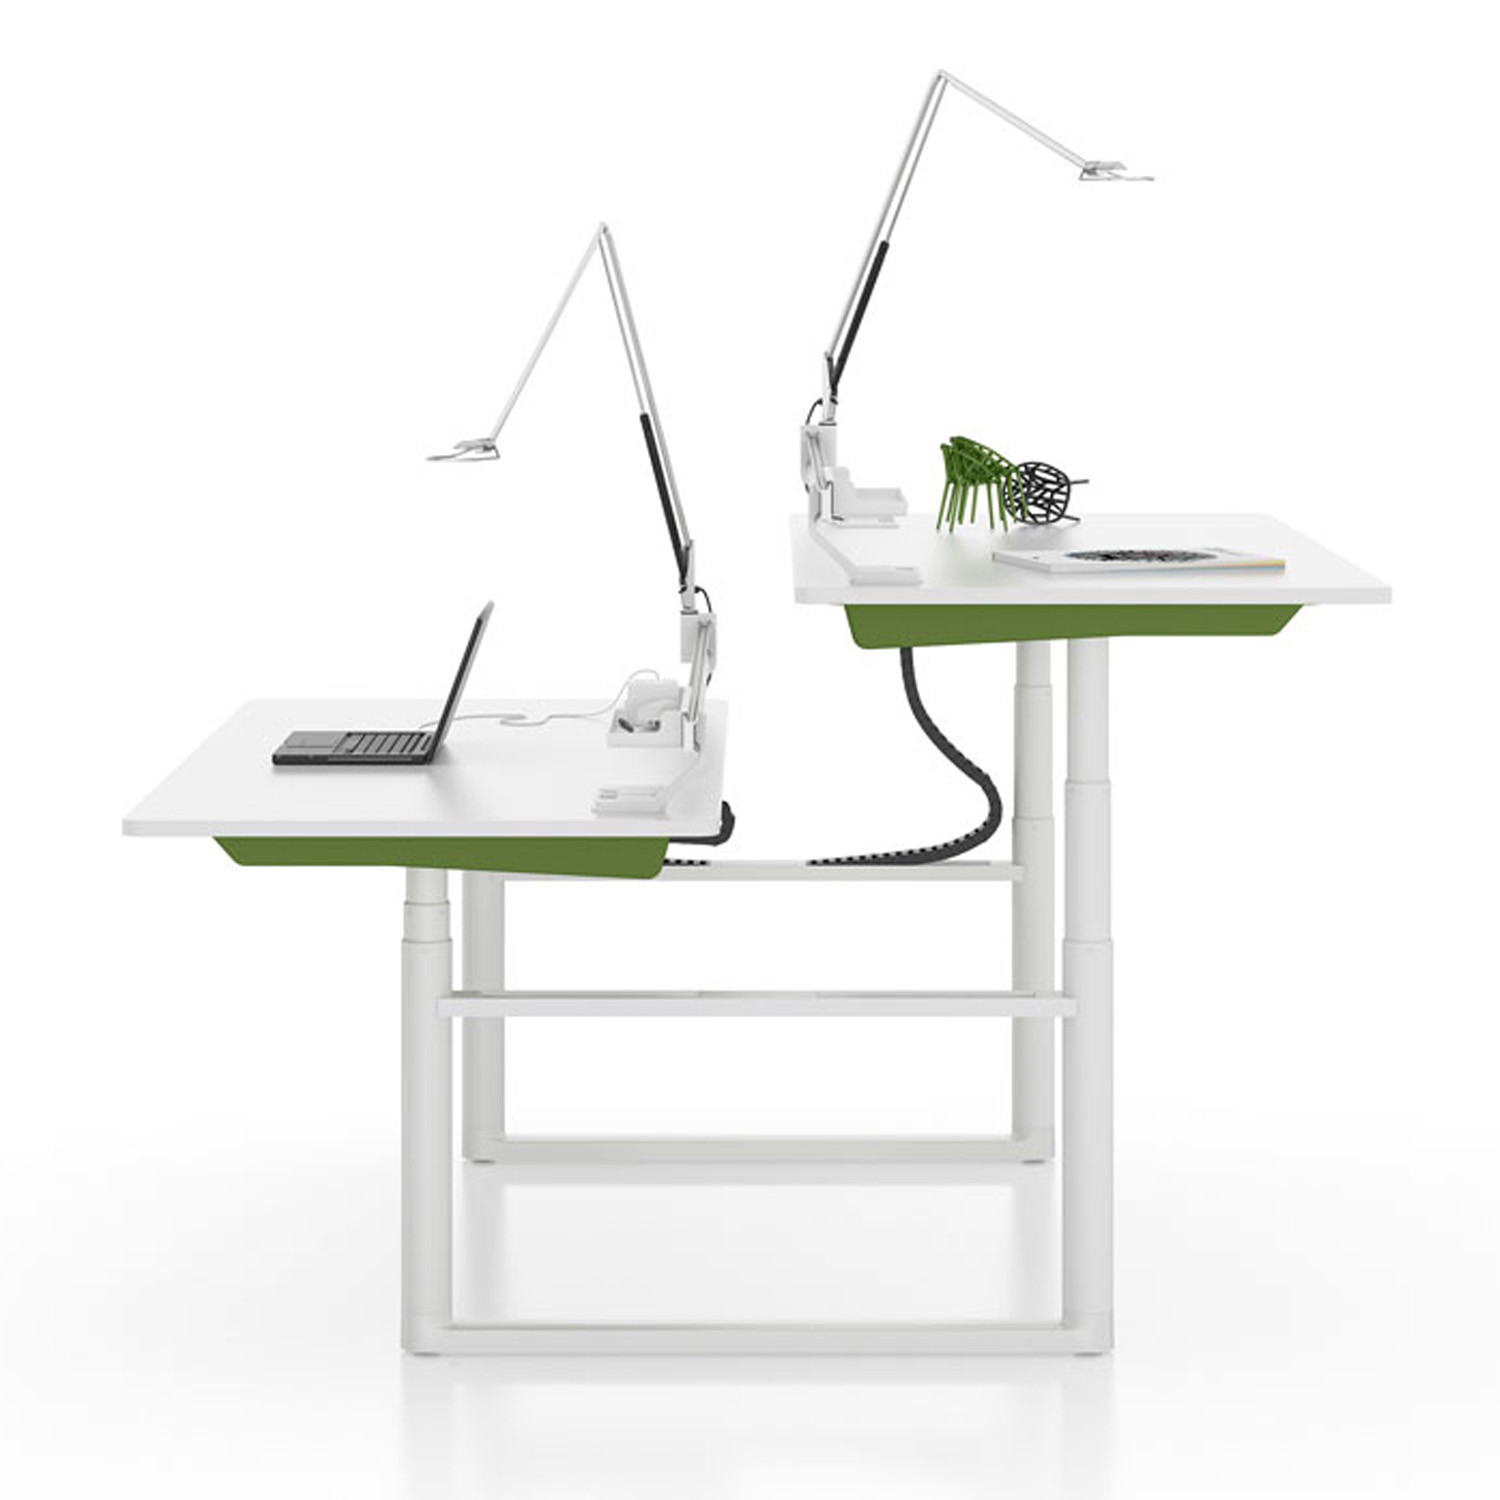 Vitra Tyde Table   Height Adjustable Sit-Stand Table   Apres Furniture - ... Vitra Tyde Adjustable Workstations; Tyde Height-Adjustable Desk